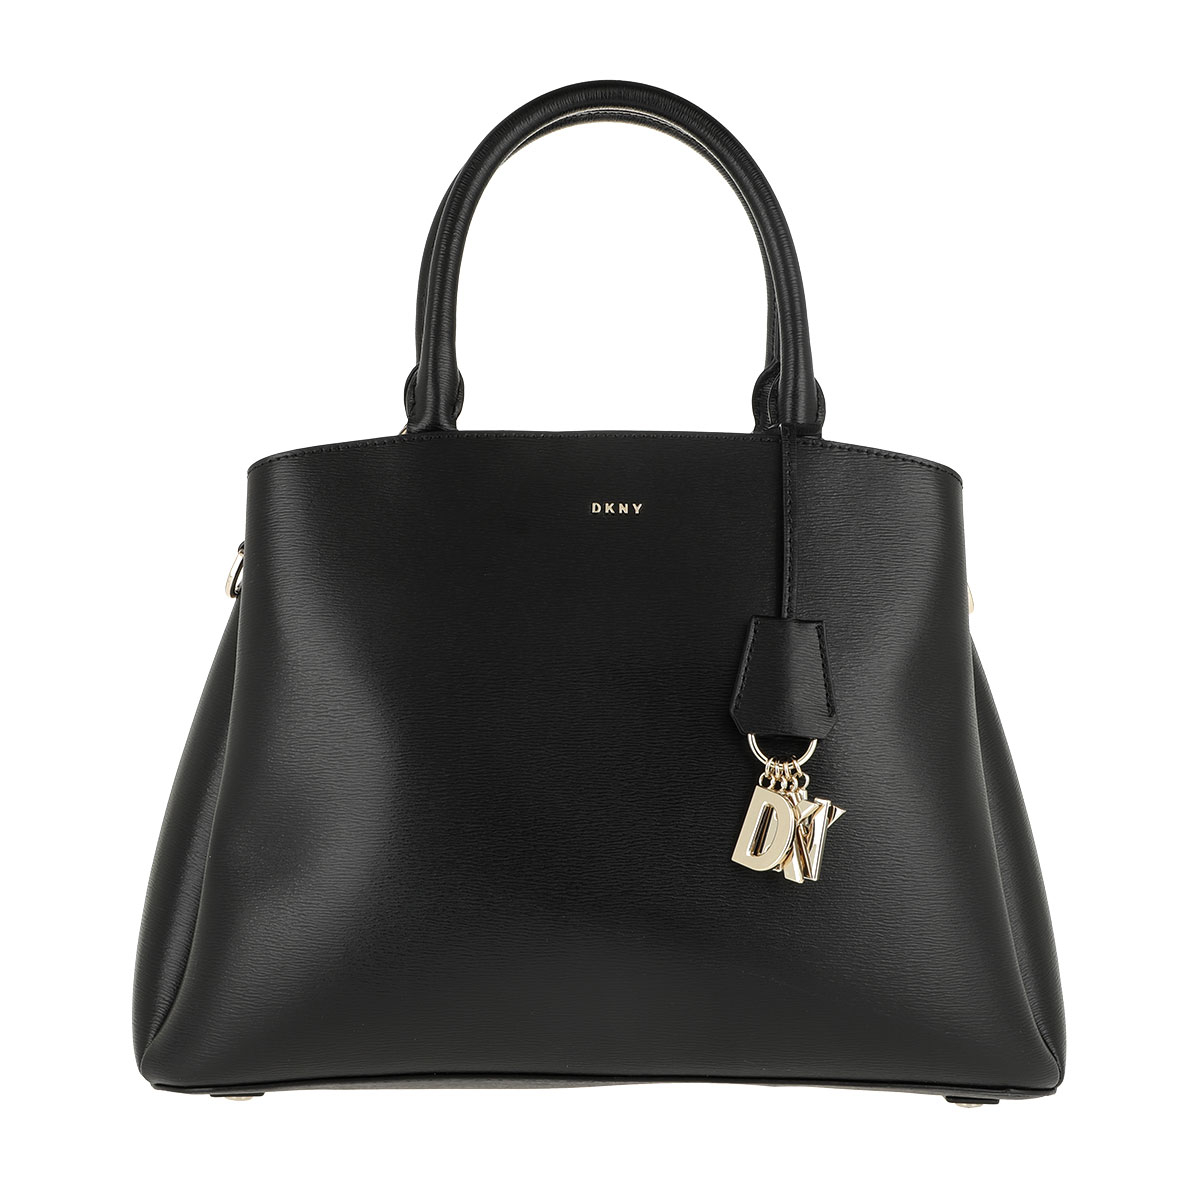 DKNY Tote - Paige Large Satchel Black/Gold - in schwarz - für Damen